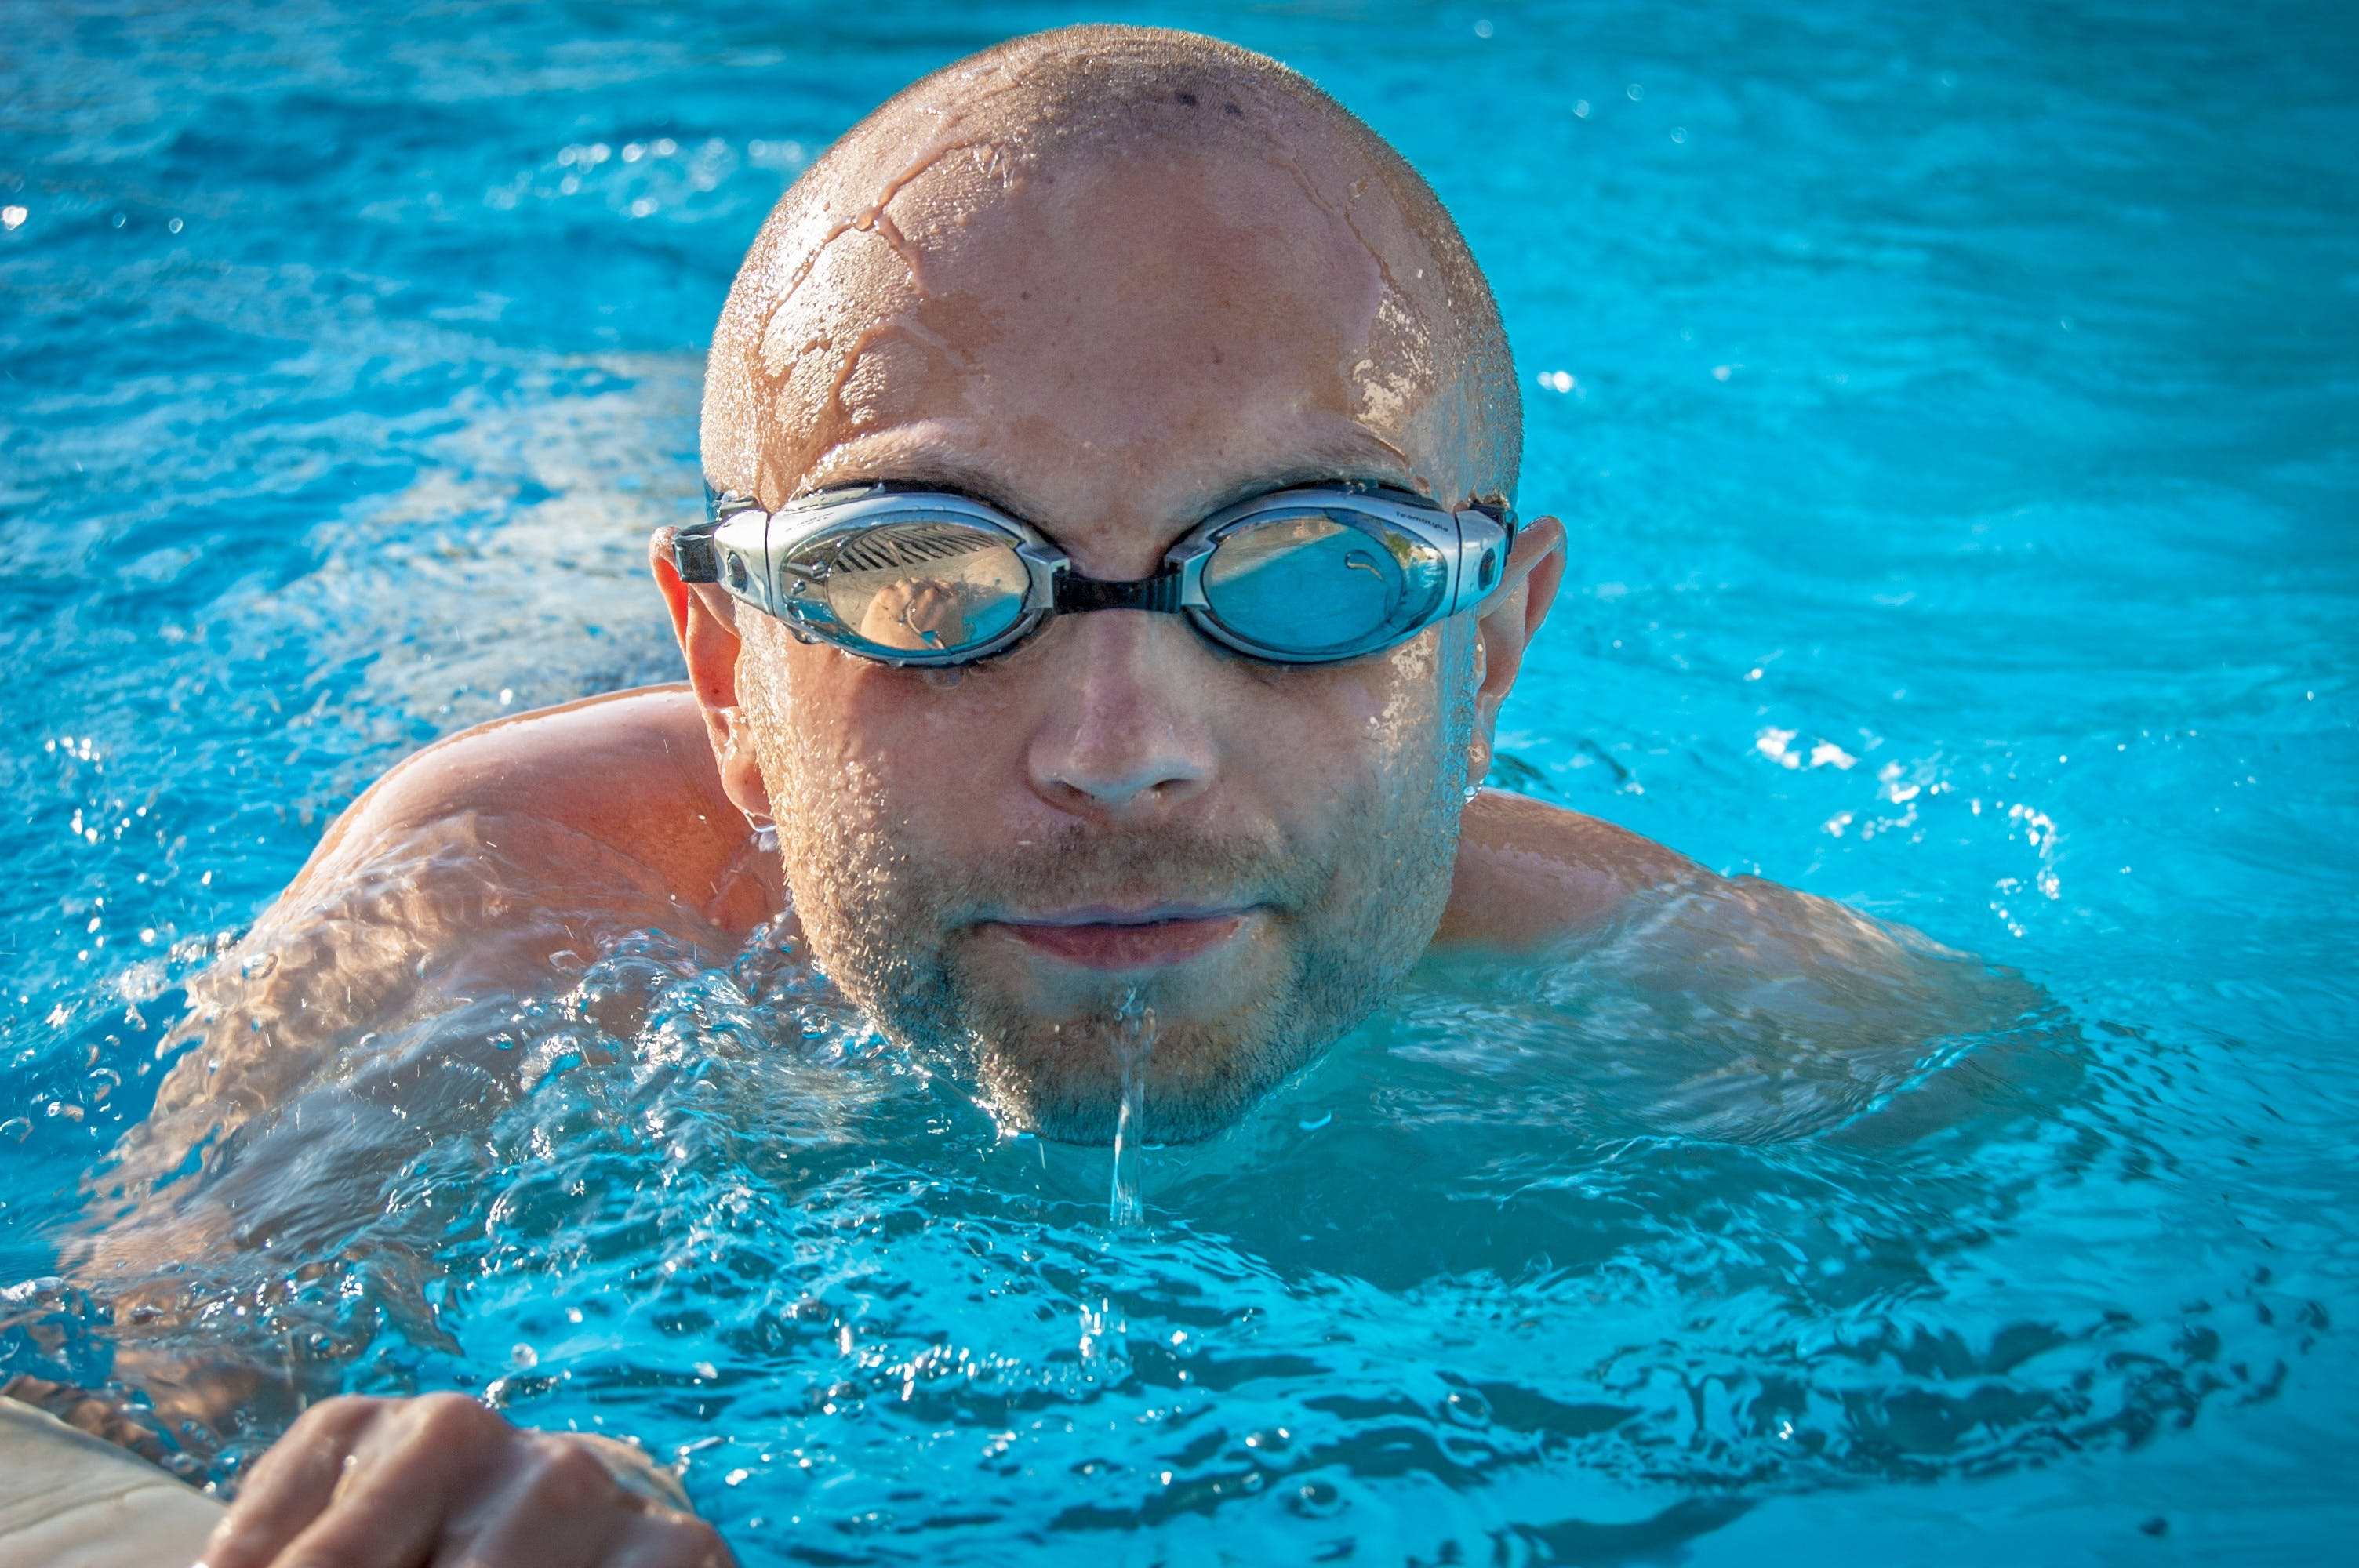 Man With Gray Swimming Goggles in Body of Water